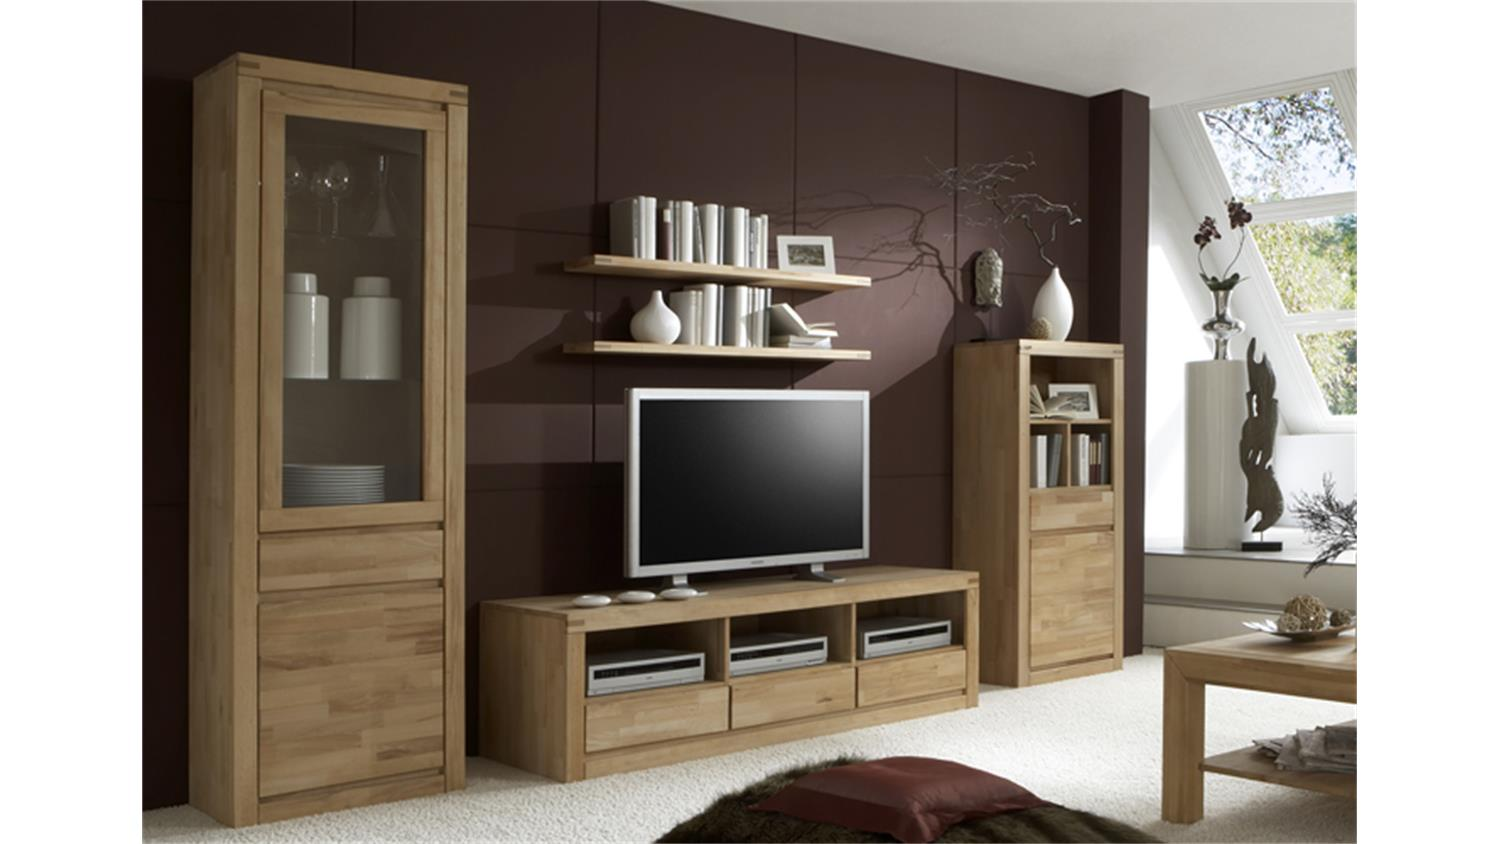 wohnwand delft 2 anbauwand in kernbuche massiv ge lt. Black Bedroom Furniture Sets. Home Design Ideas